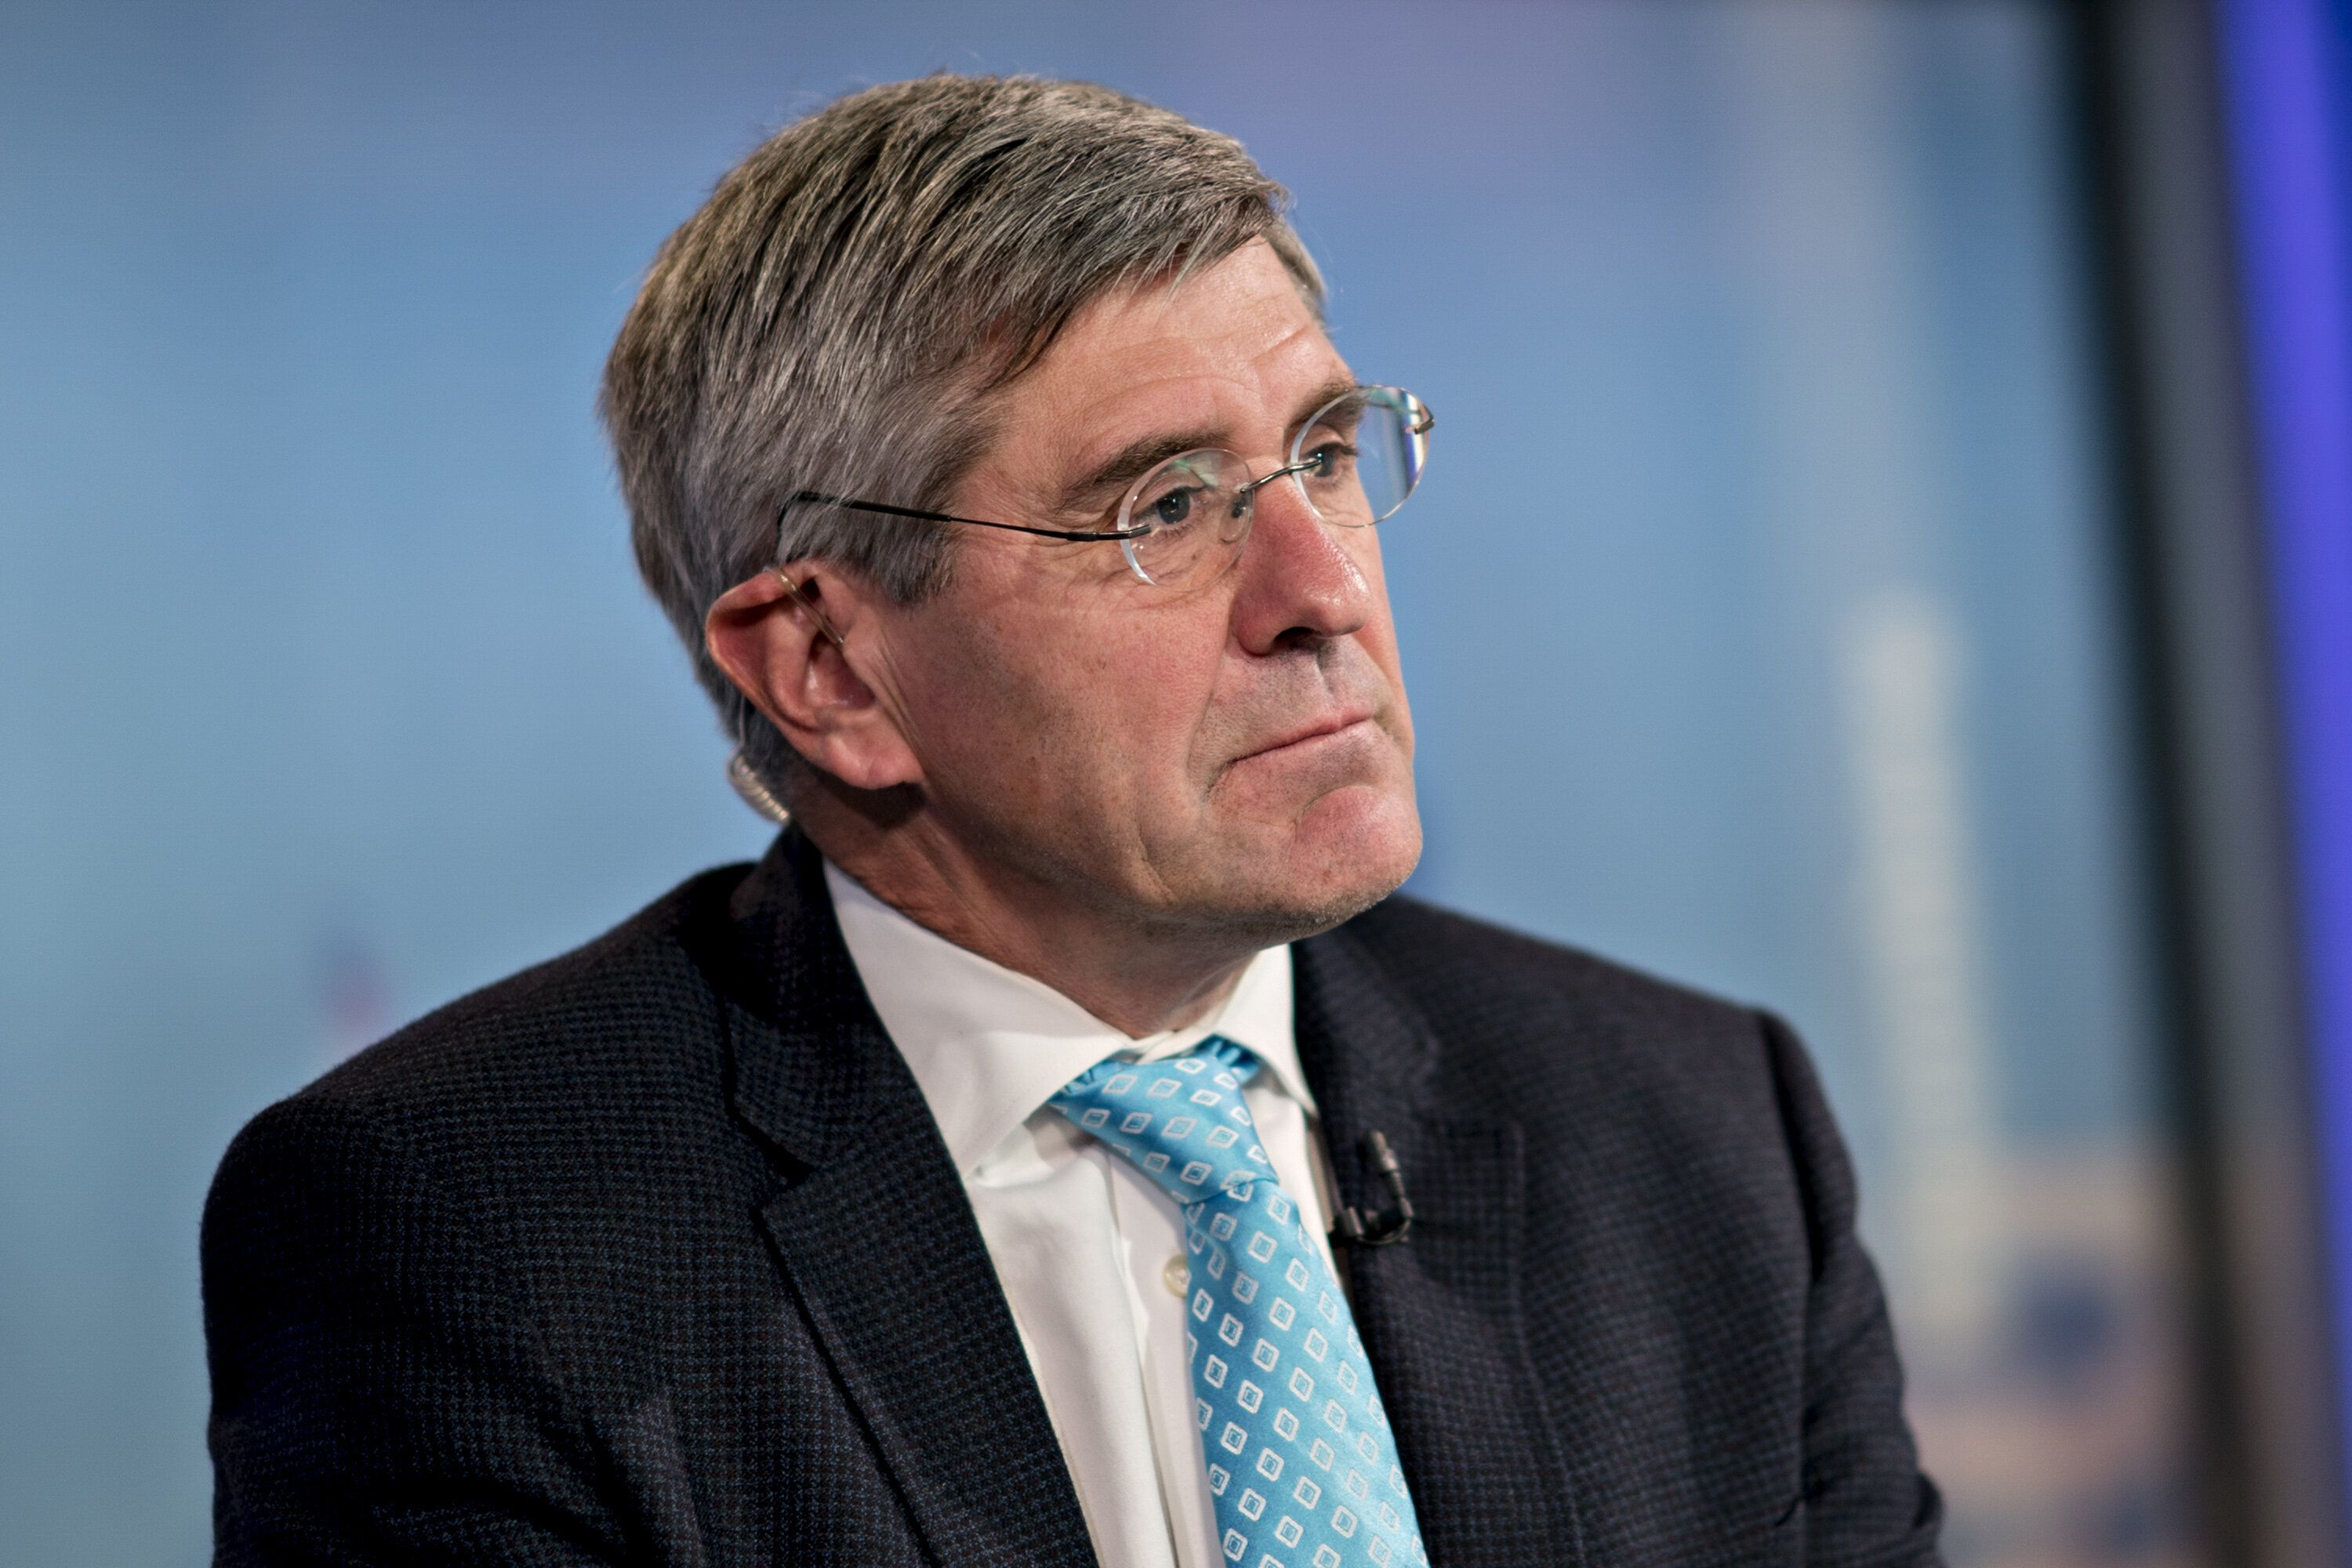 Stephen Moore, visiting fellow at the Heritage Foundation, listens during a Bloomberg Television interview in Washington, D.C., U.S., on Friday, March 22, 2019. President Donald Trump said he's nominating Moore, a long-time supporter of the president, for a seat on the Federal Reserve Board. Photographer: Andrew Harrer/Bloomberg via Getty Images